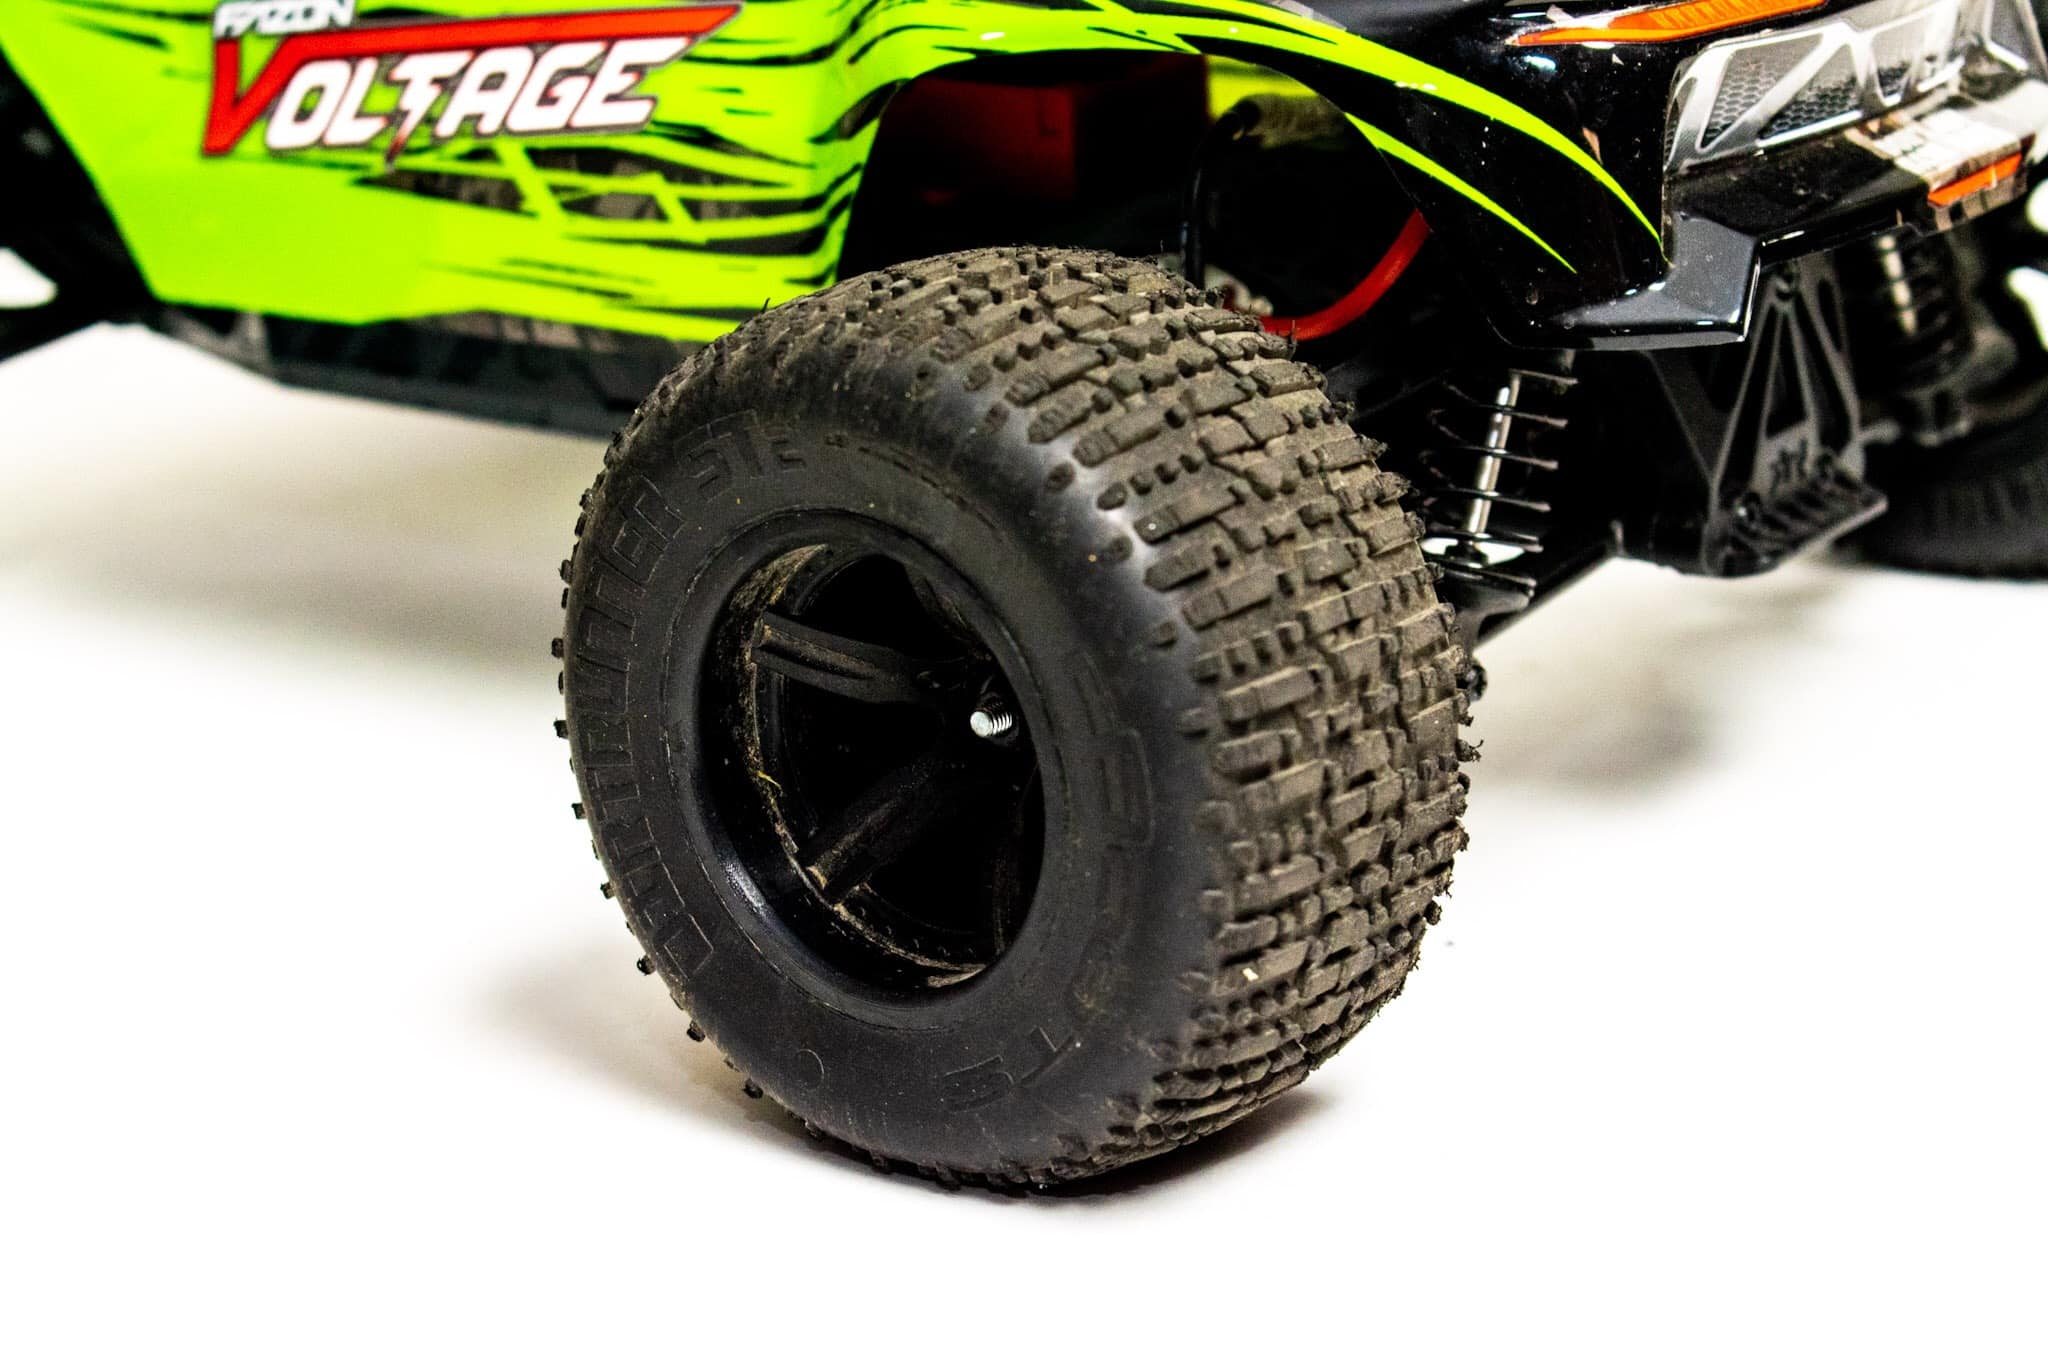 ARMA Fazon Voltage Studio - Rear Tire Close